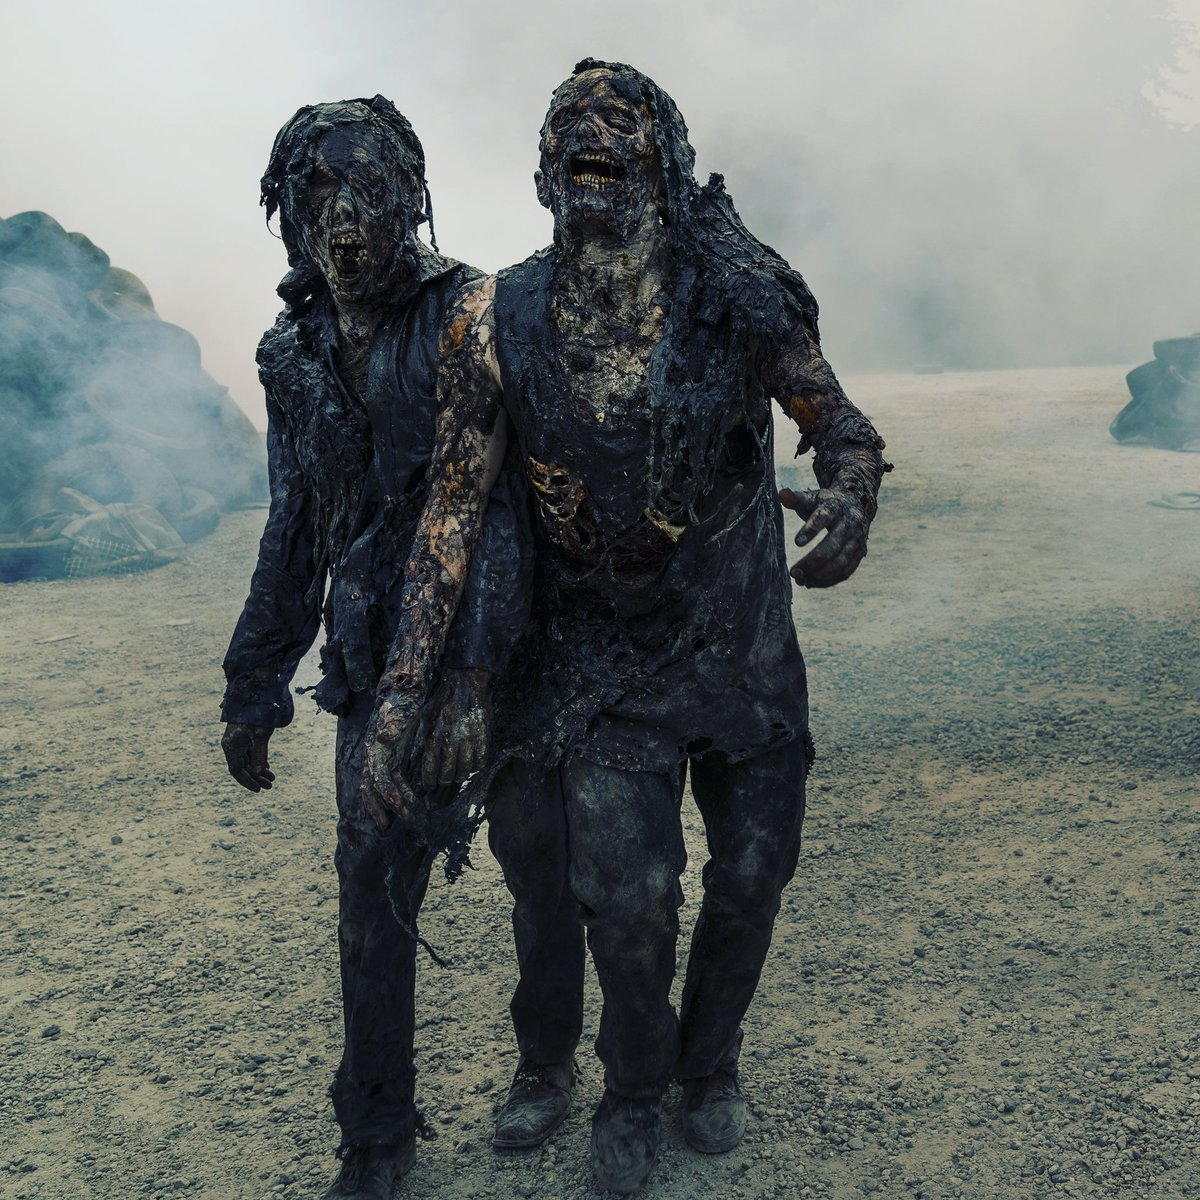 Come to the BBQ they said. It'll be fun they said.  #empties #walkers #twd #thewalkingdead #twdfamily #TWDU #TWDUniverse #feartwd #TWDWorldBeyond @WalkingDead_AMC @FearTWD @TWDWorldBeyond  Macall Polay/AMCpic.twitter.com/KkhuJvrqjr